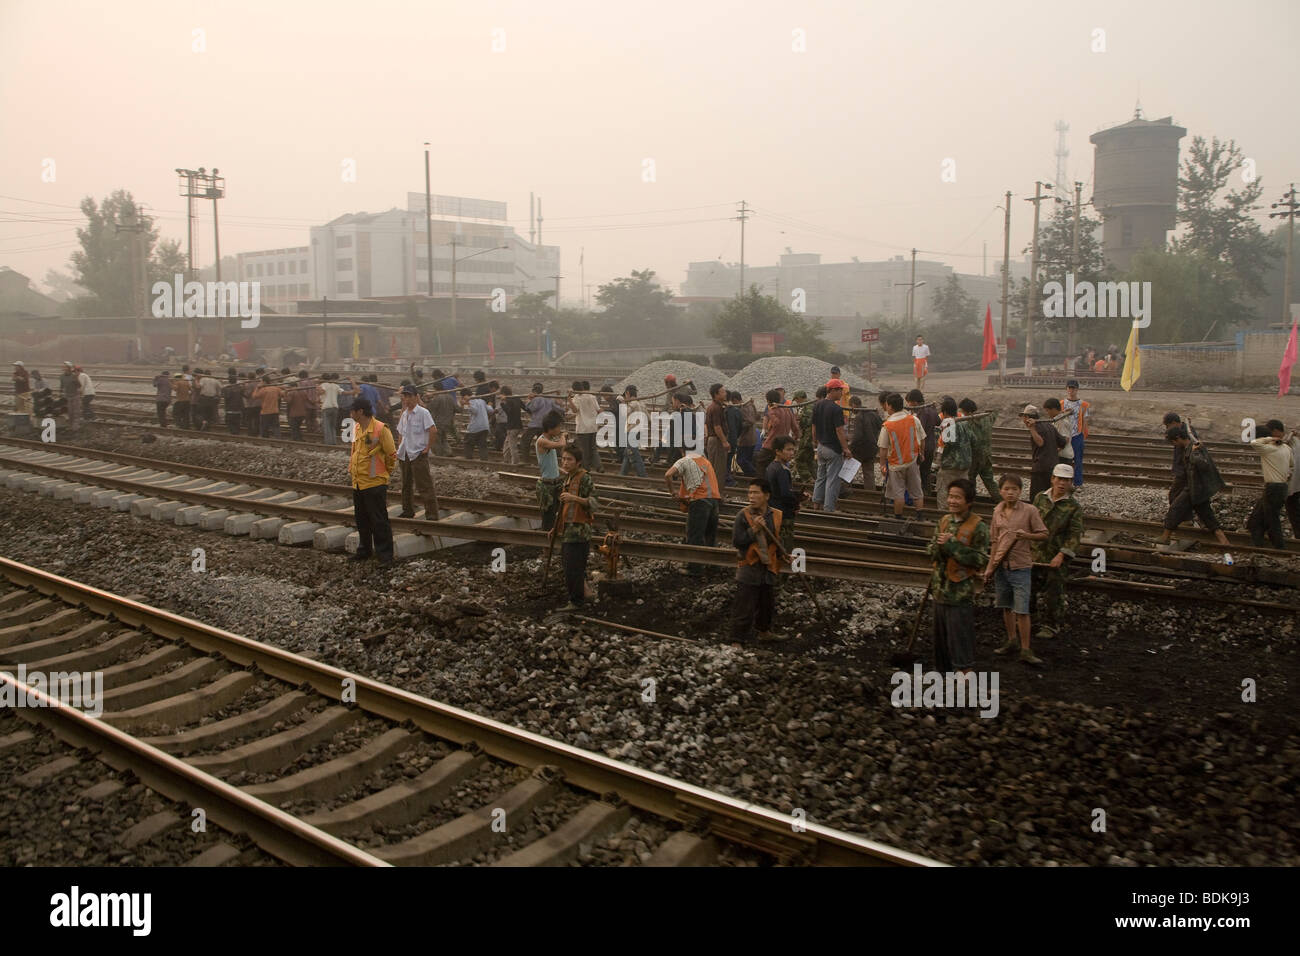 JIEXIU, SHANXI PROVINCE, CHINA - AUGUST 2007: a team of railway workers working in pairs use yokes to lift a steel - Stock Image